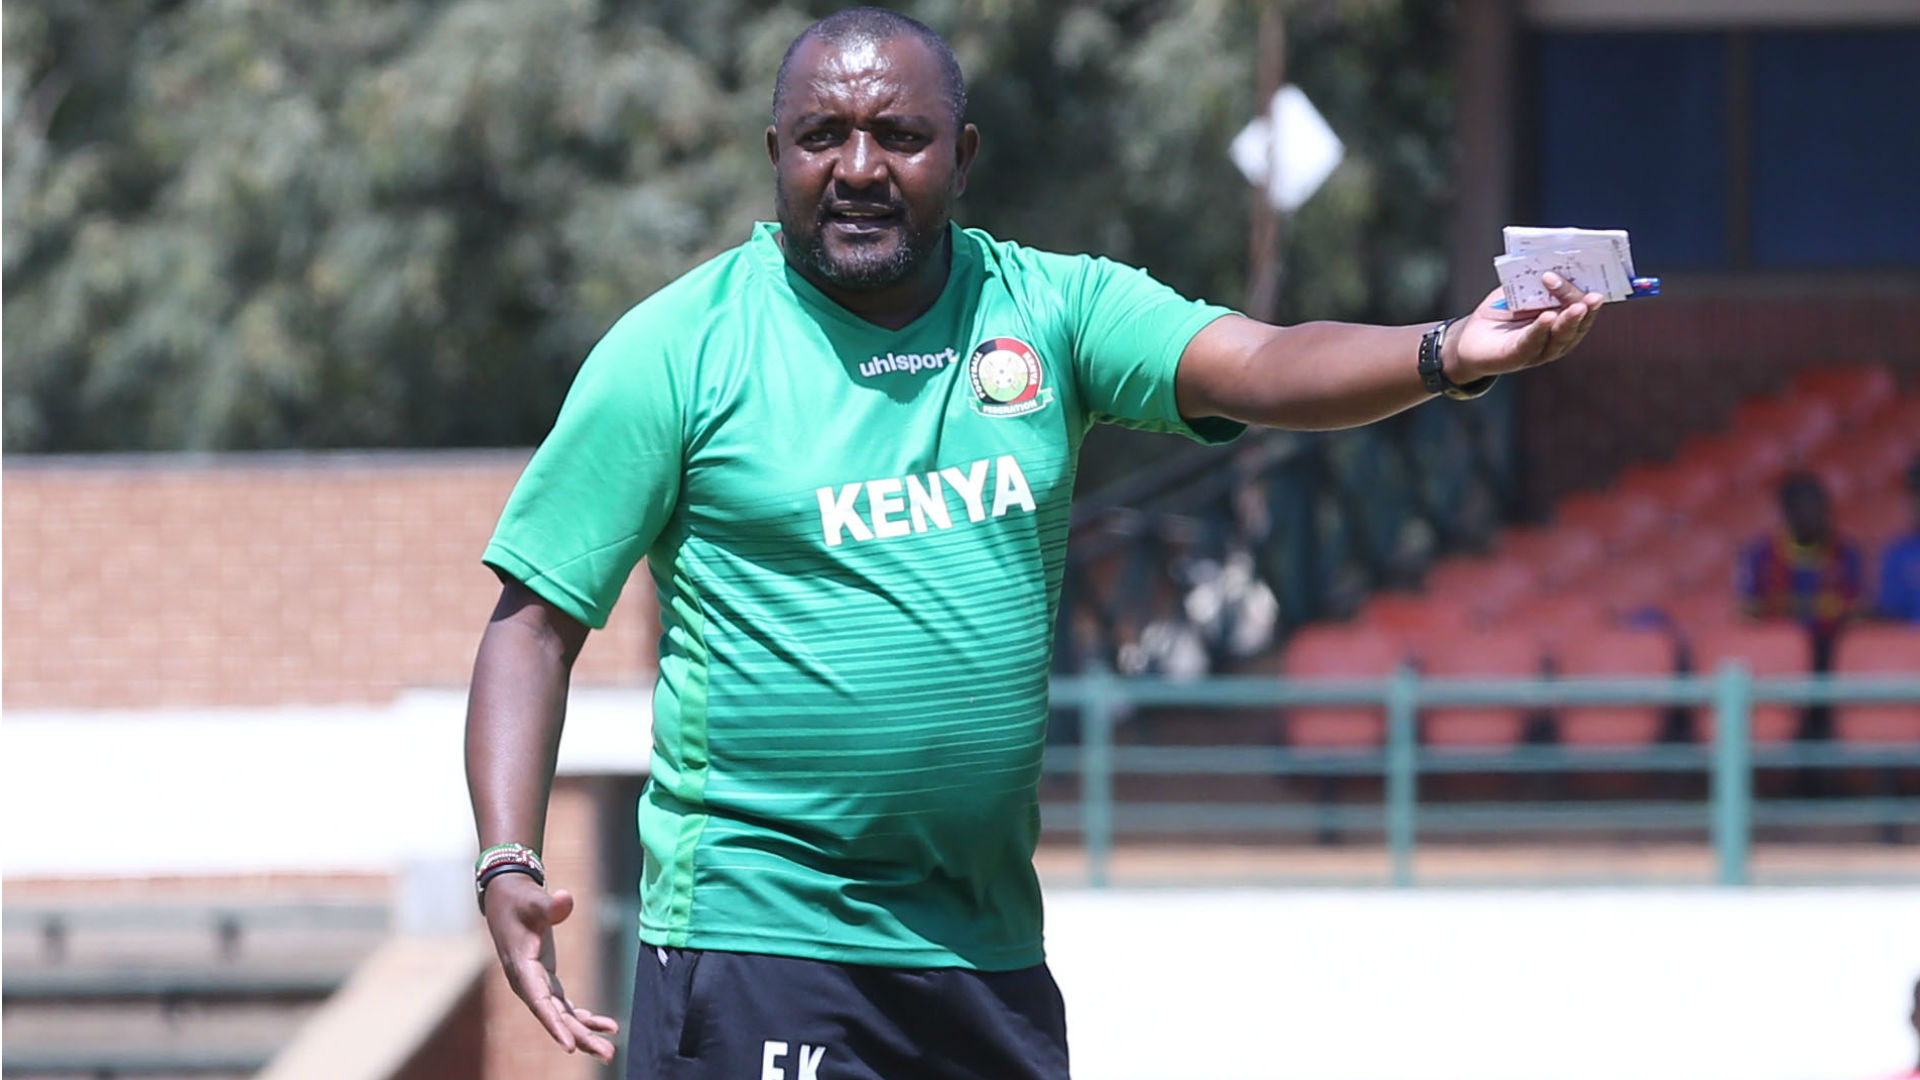 Harambee Stars Coach Francis Kimanzi has his trust with the young talents as he works to build a future for Harambee Stars. www.businesstoday.co.ke